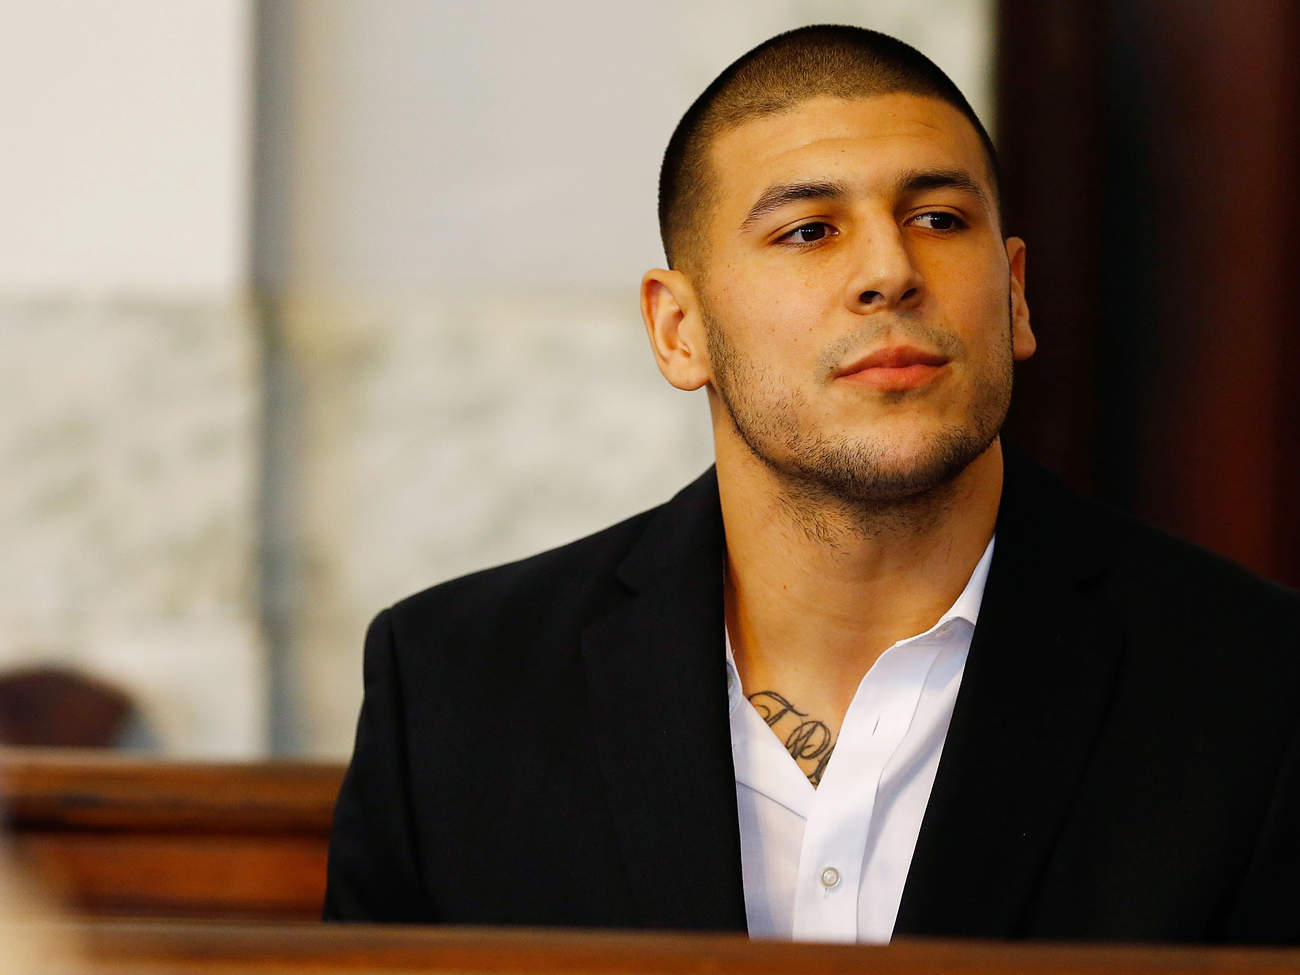 Aaron Hernandez sits in the courtroom of the Attleboro District Court during his hearing on Aug. 22, 2013 in North Attleboro, Massachusetts.